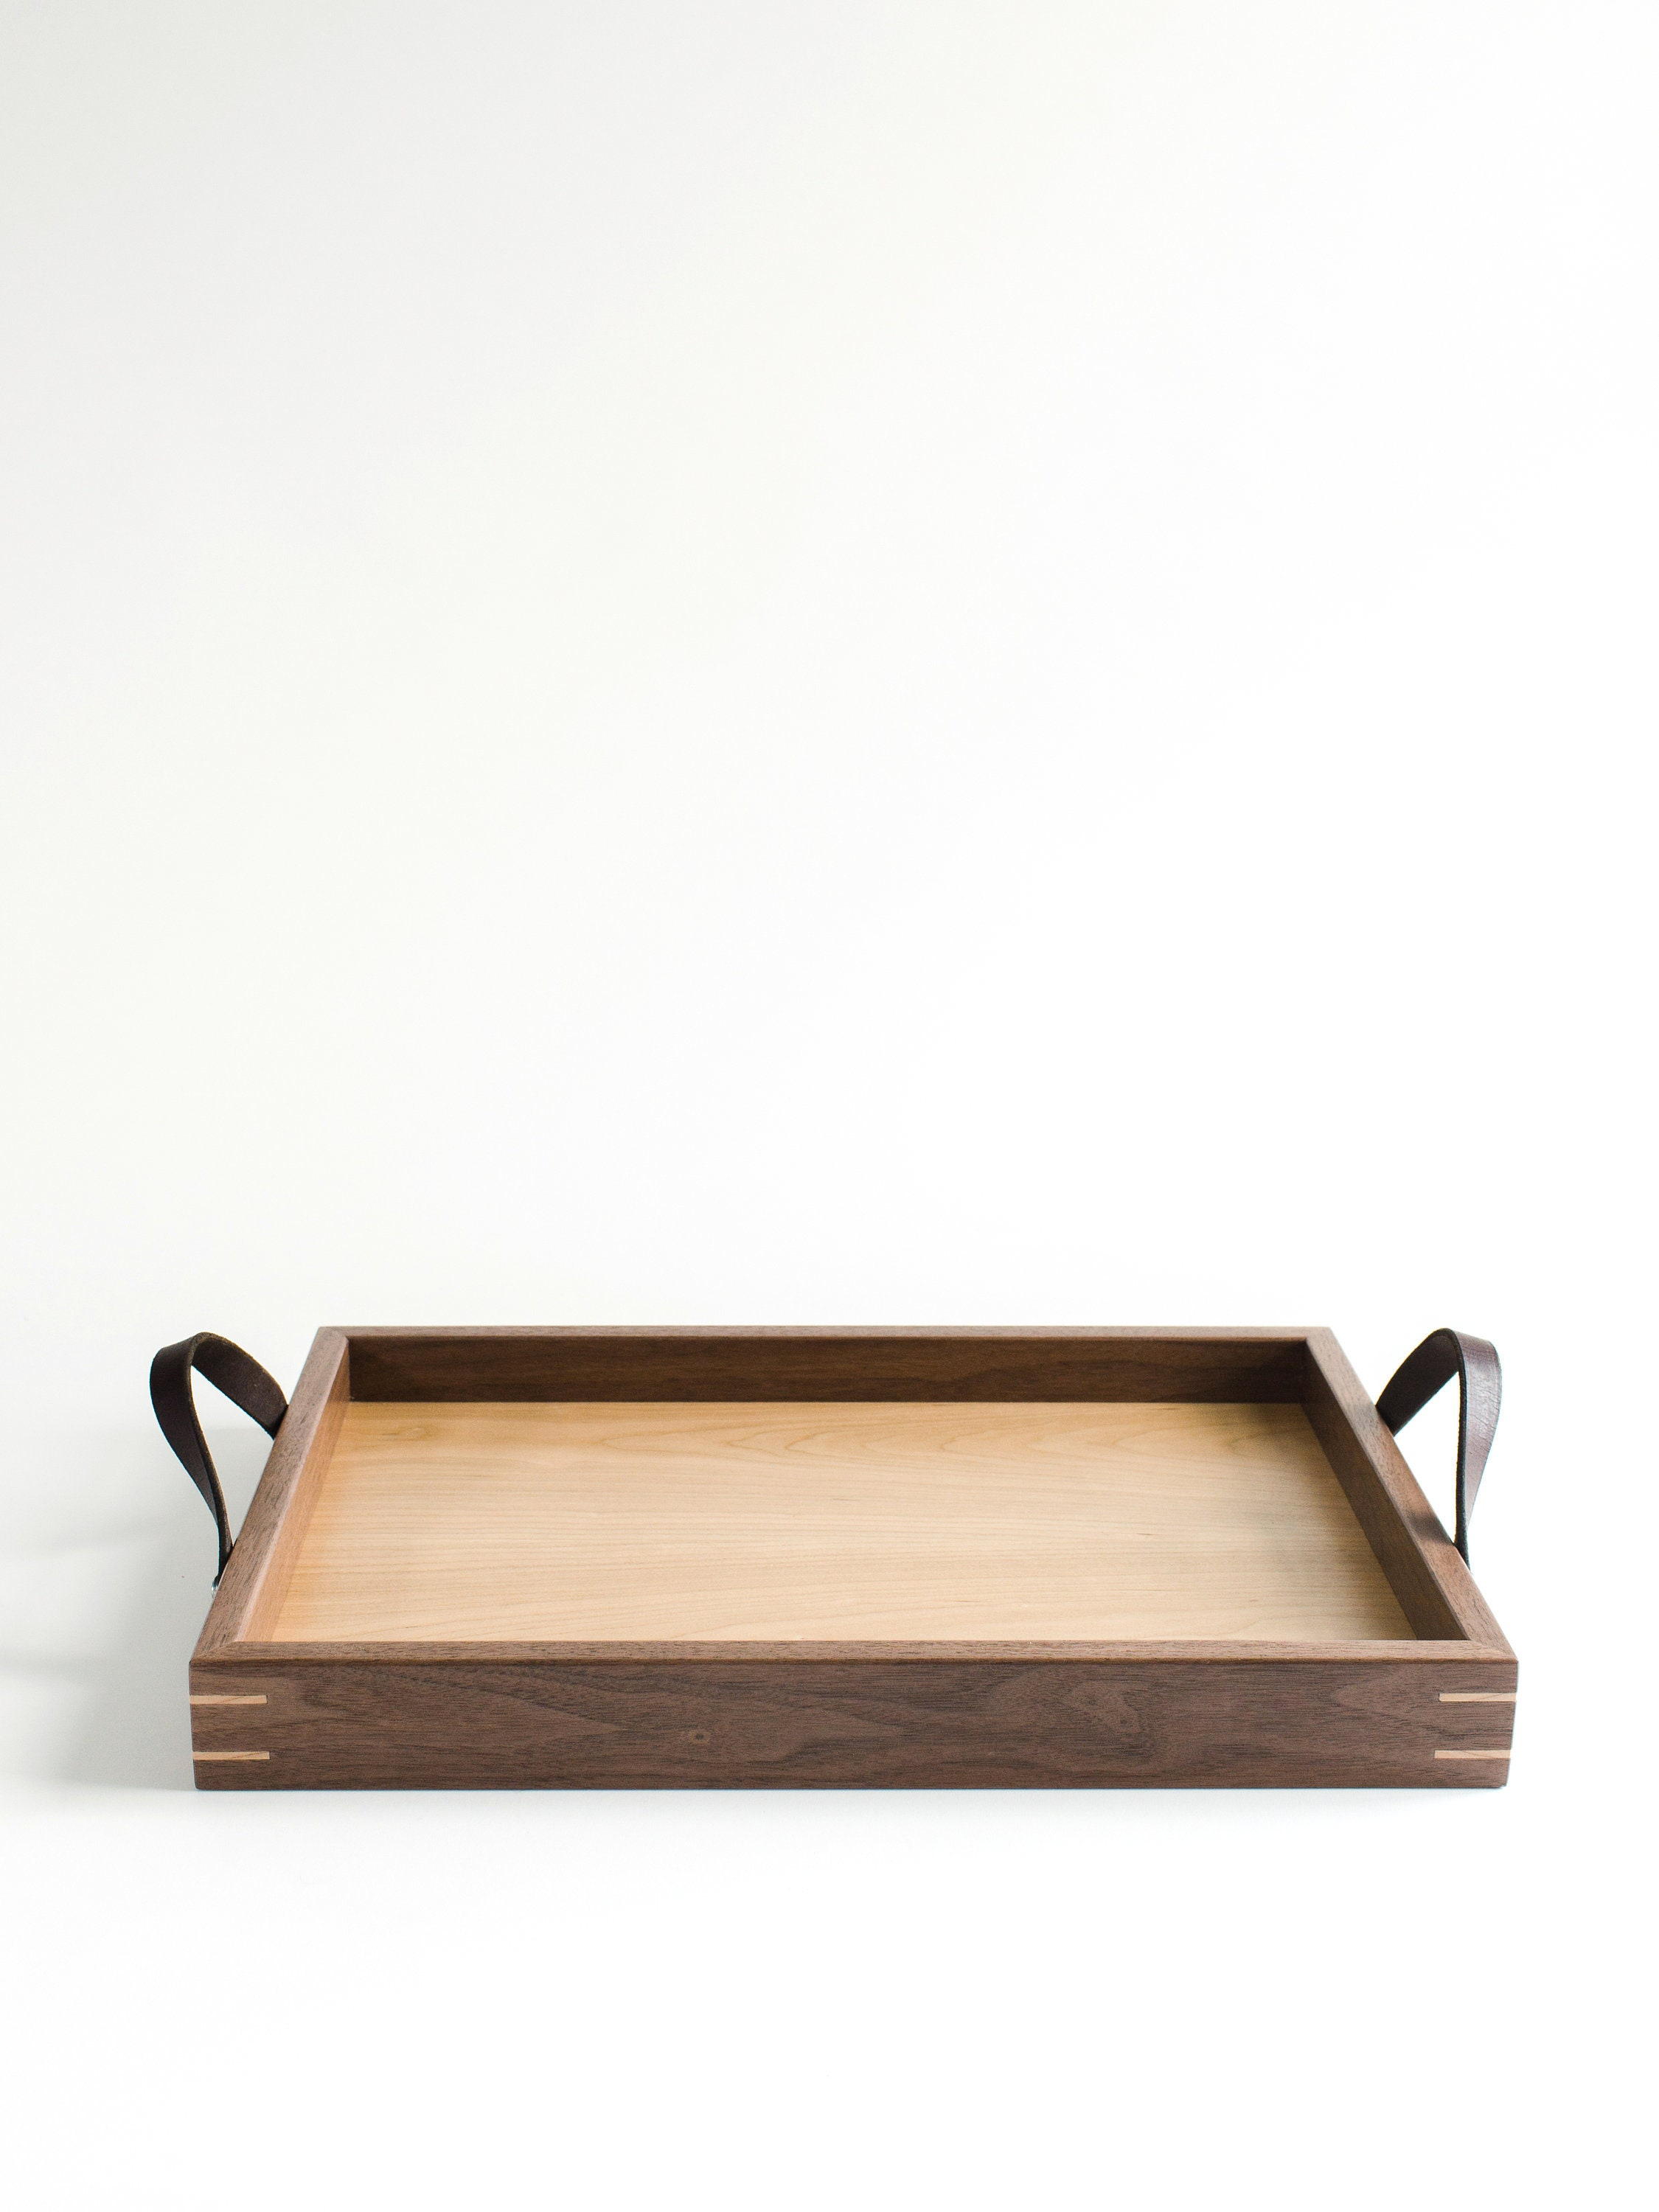 custom engraved serving tray with walnut and cherry wood